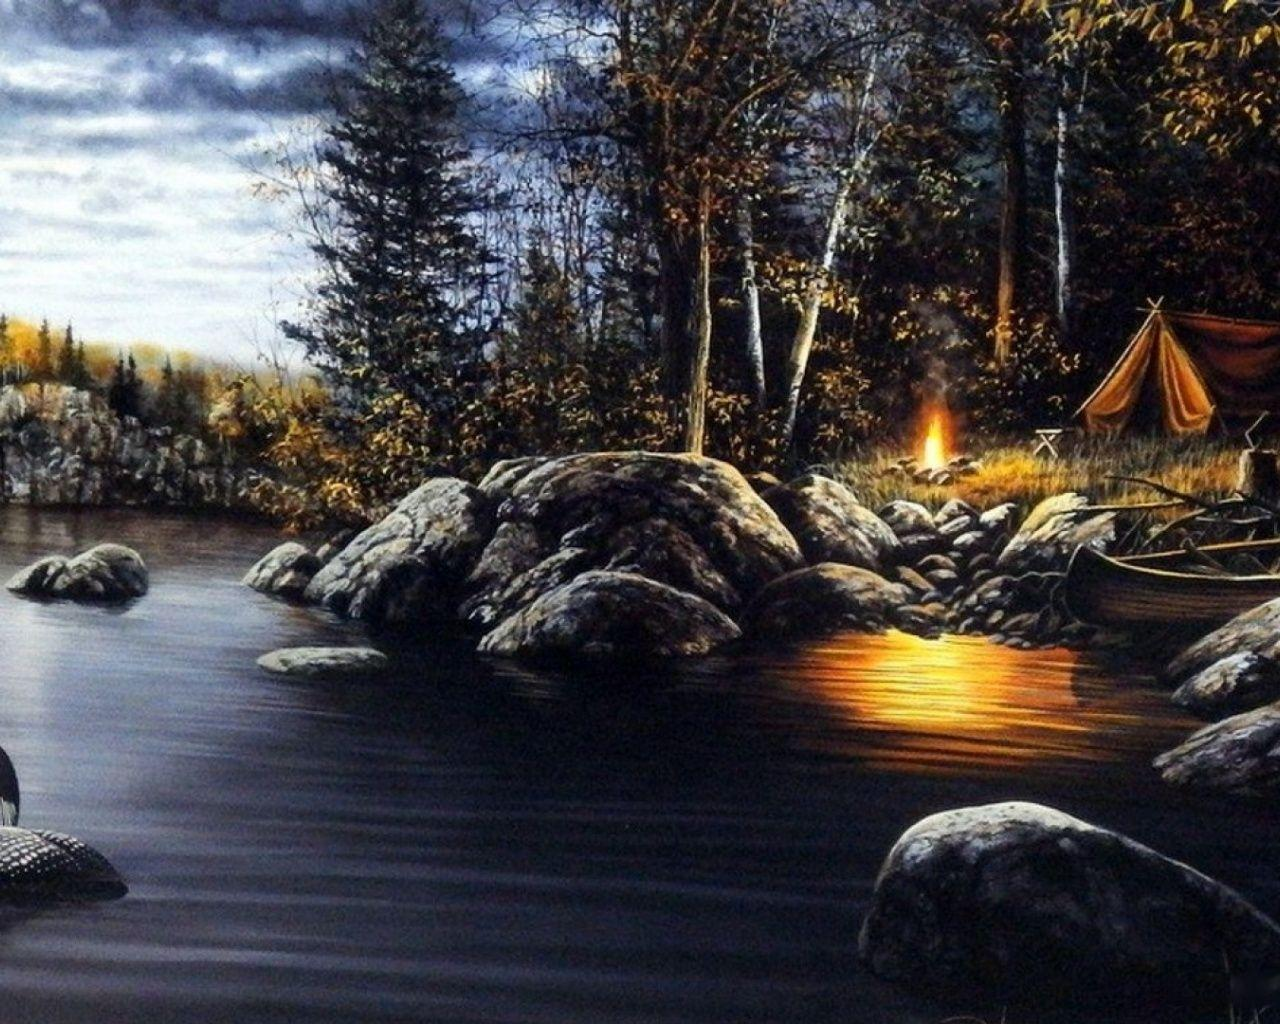 Best 53 Campground Backgrounds on HipWallpaper Campground 1280x1024